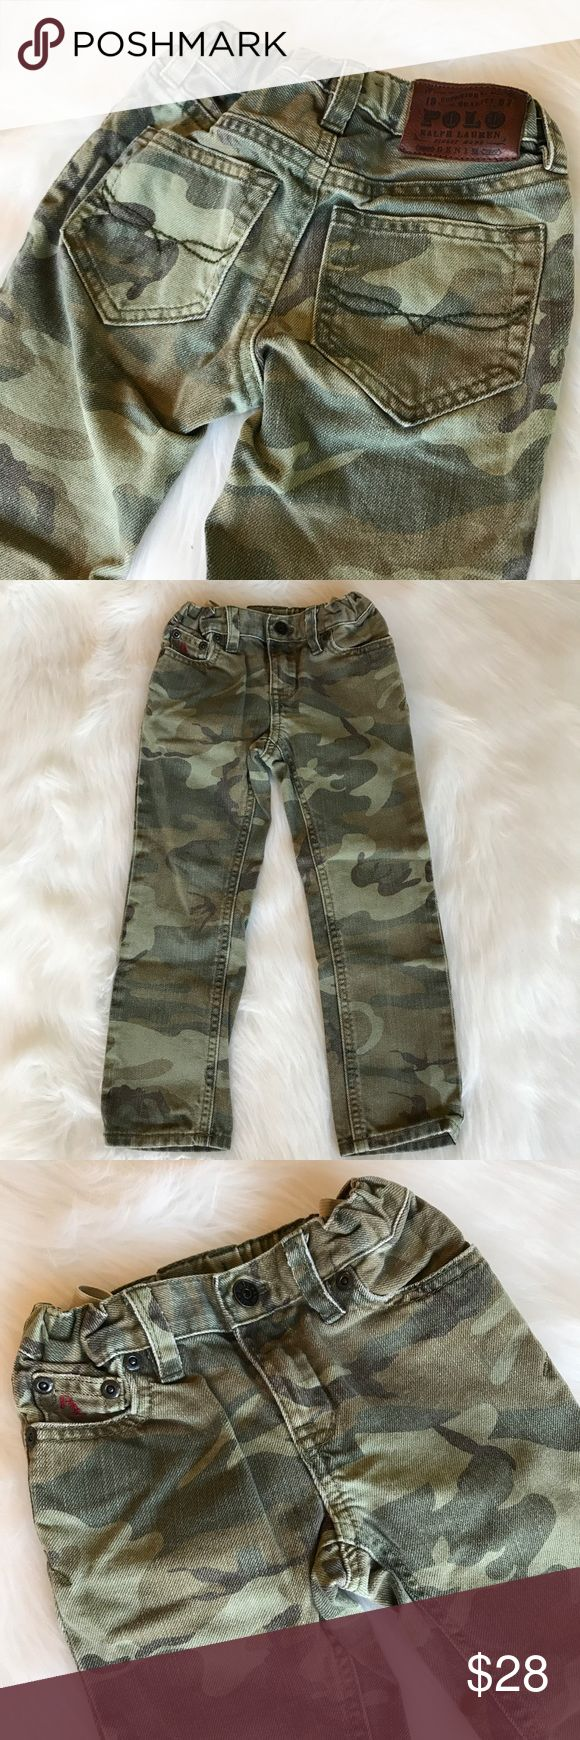 "Ralph Lauren Polo Boys Camouflage Jeans Camo Ralph Lauren Polo Toddler Boys Camouflage Jeans with adjustable waist! Love this neutral print! So great for Fall! 109% cotton. Size 3T. 22"" long. Like new!! WM1335082417 Polo by Ralph Lauren Bottoms Jeans"